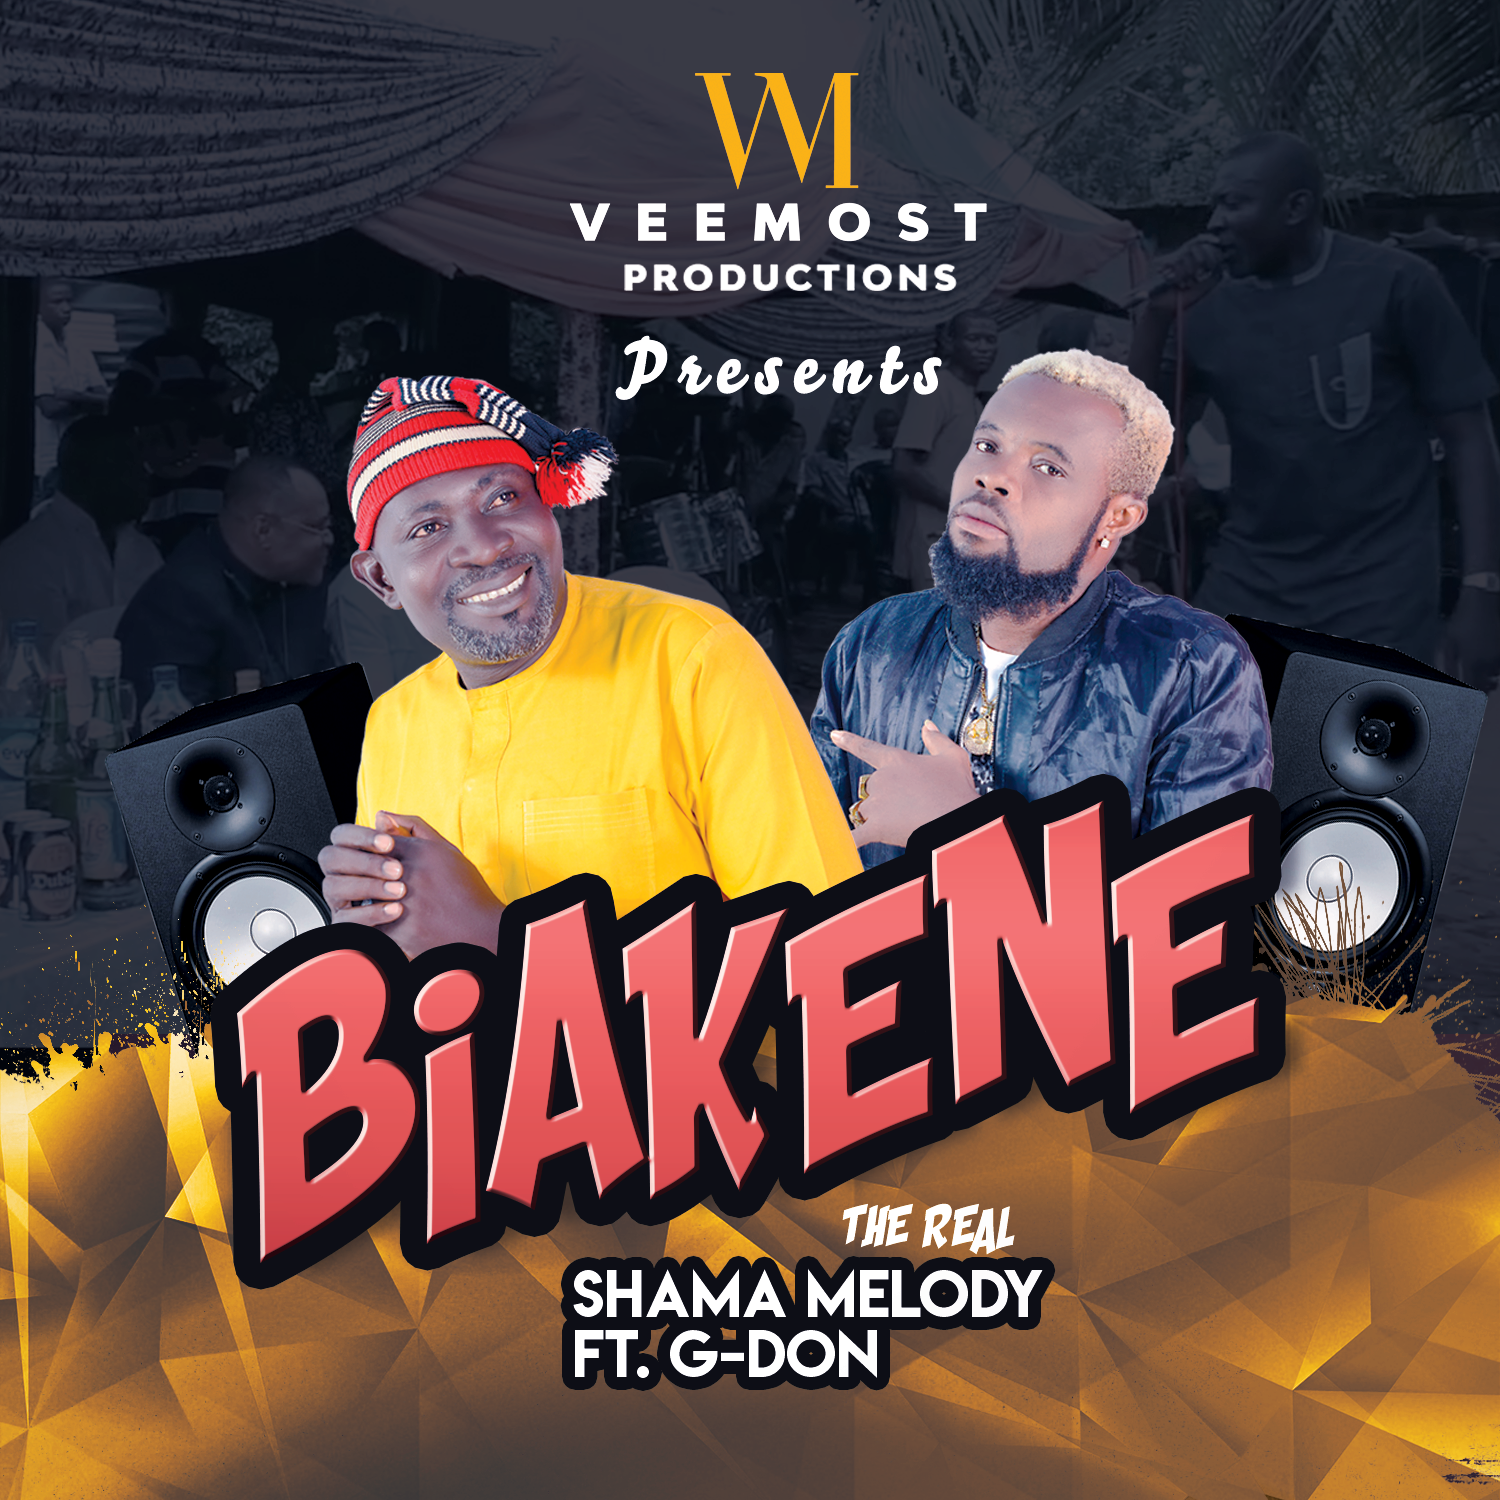 Biakene – Hot New Single